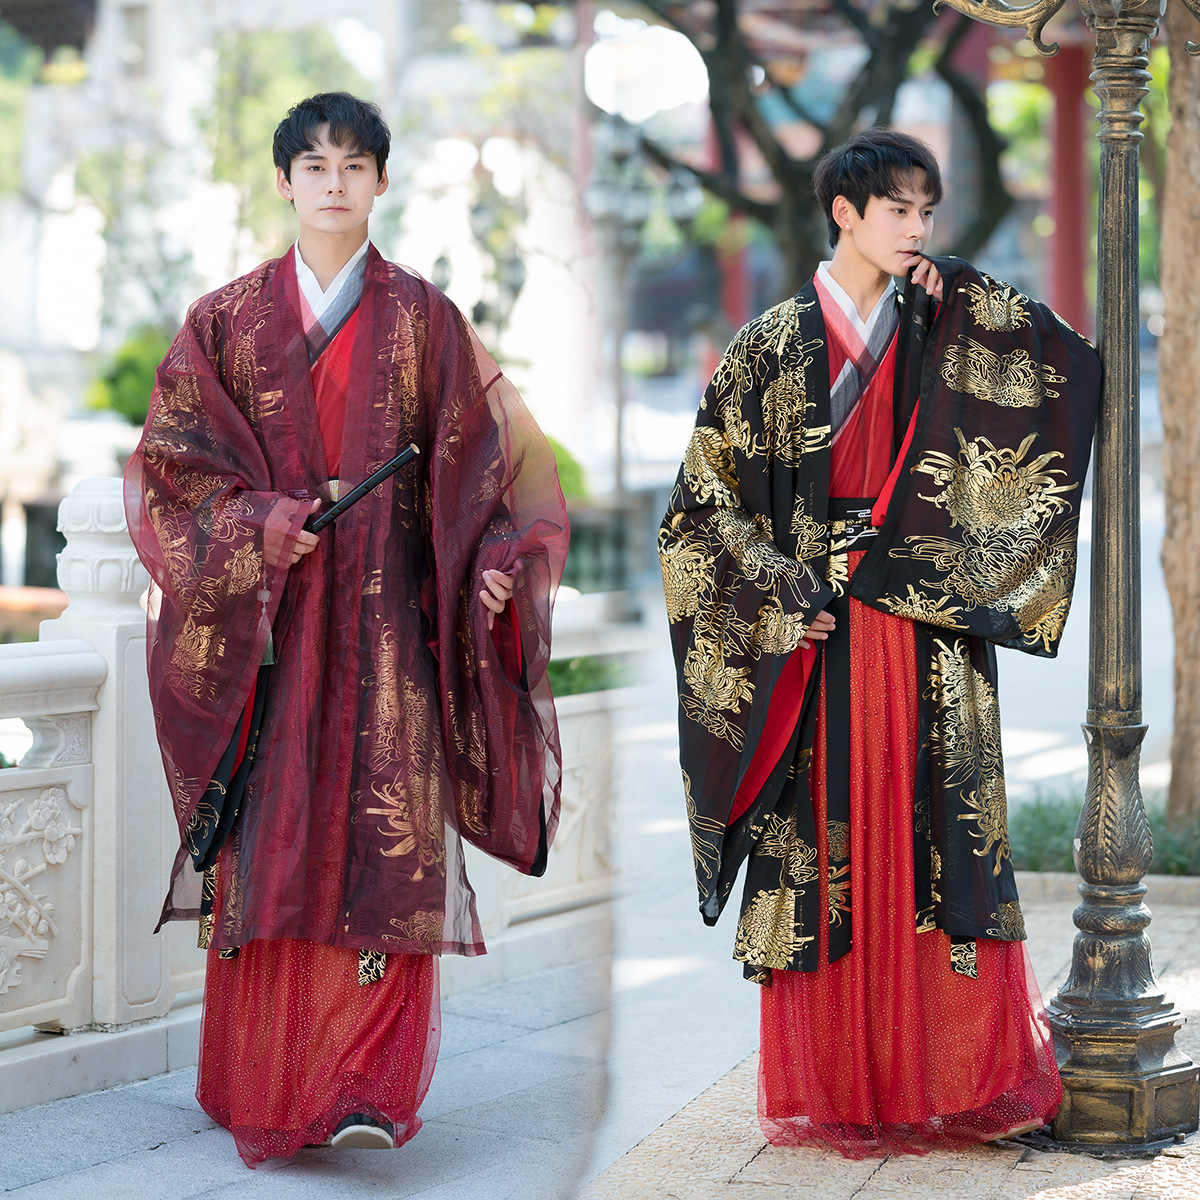 Men Hanfu Chinese Traditional Tang Suit Tops Skirt Vest Japanese Samurai Cosplay Costume Kimono Hanfu Dress Yukata Robe Gown